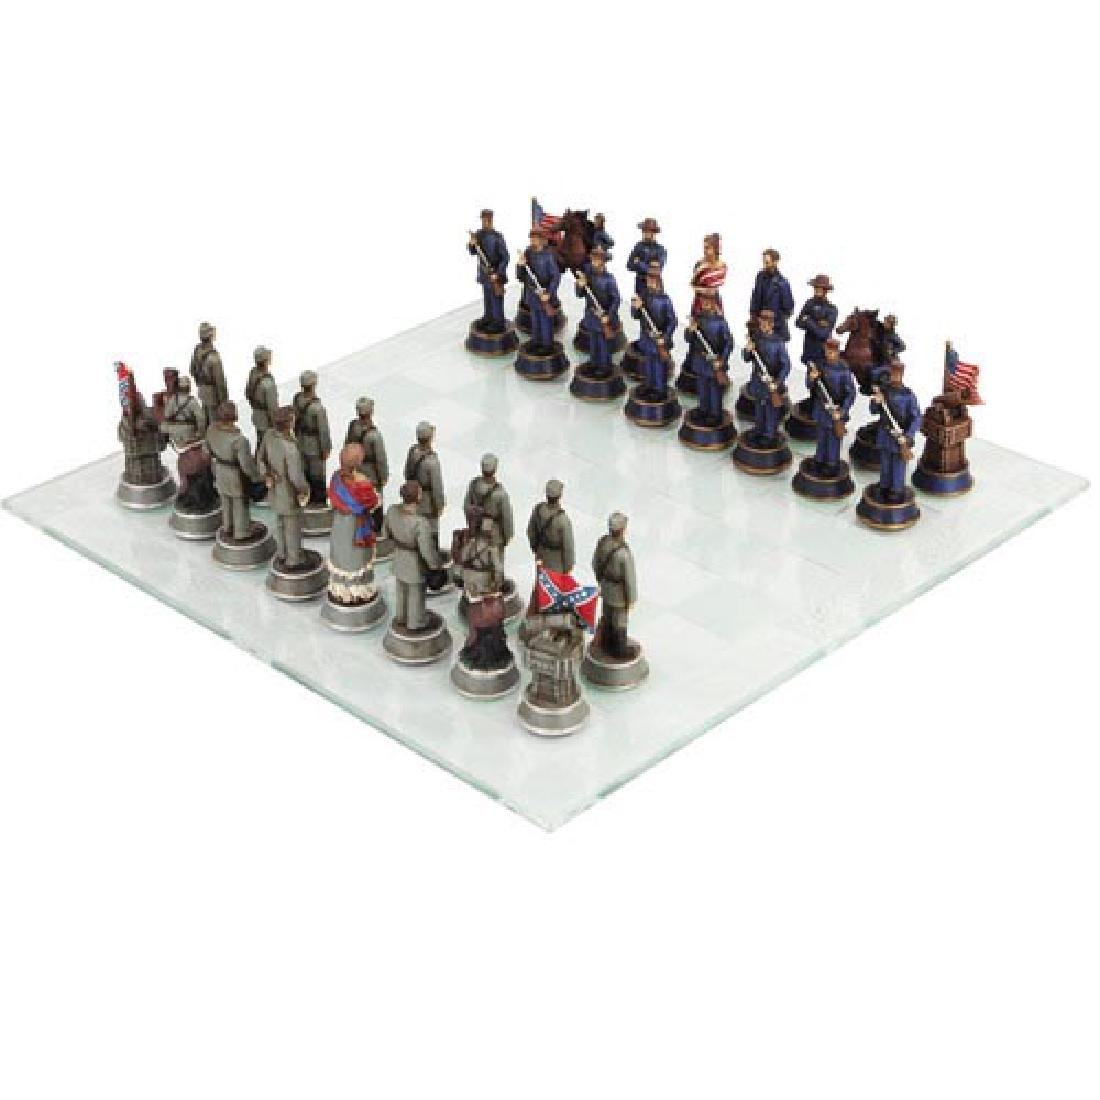 CIVIL WAR CHESS SET WITH GLASS BOARD